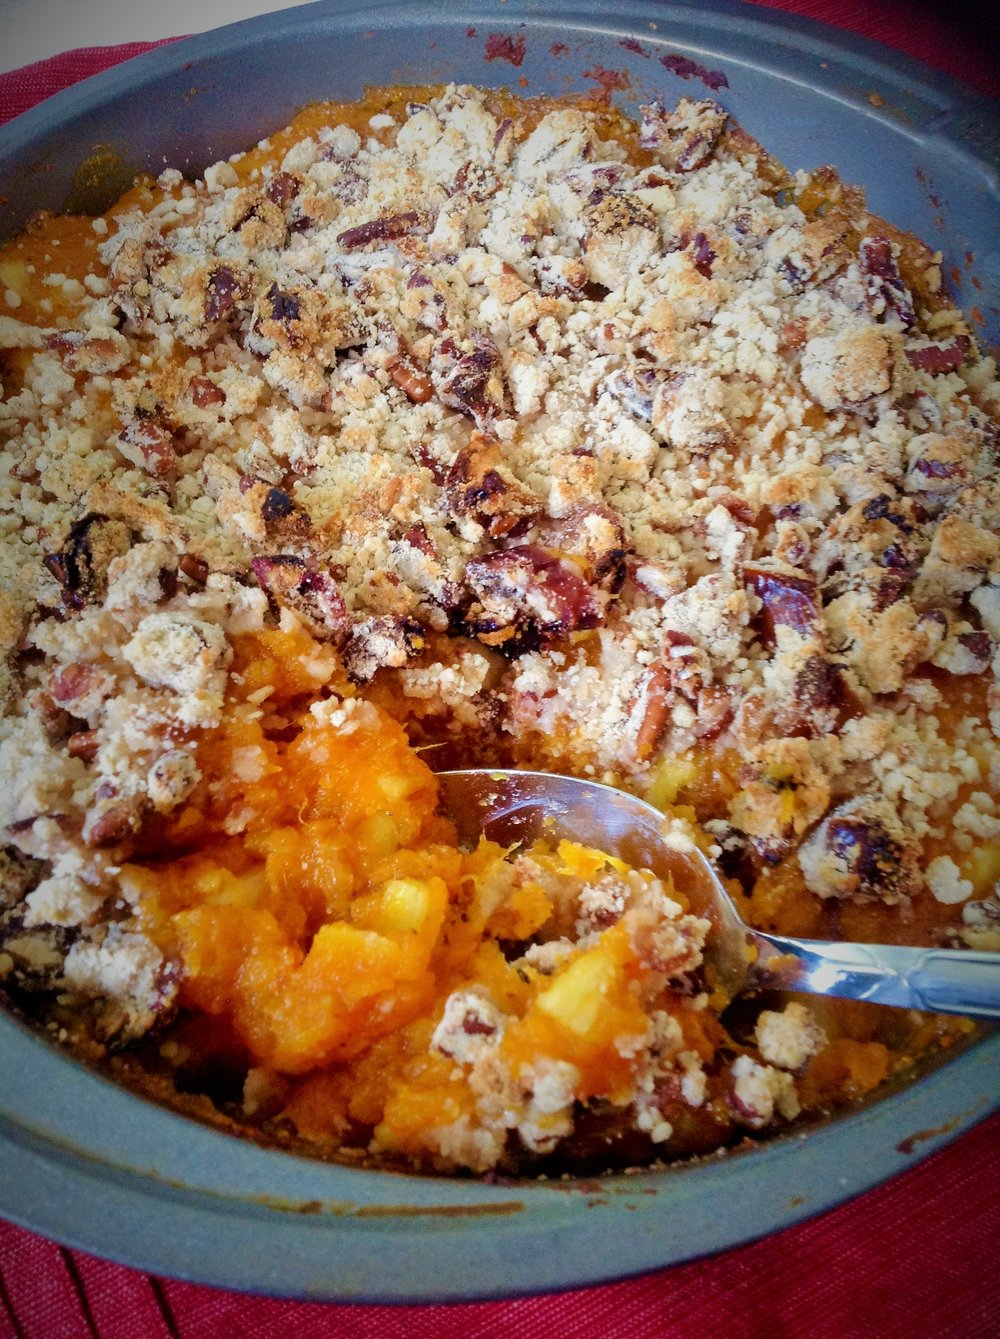 Sweet Potato Pineapple Casserole with Pecan Streusel - Healthy, Gluten-Free, No Sugar Added, Plant-Based, Vegan Recipe